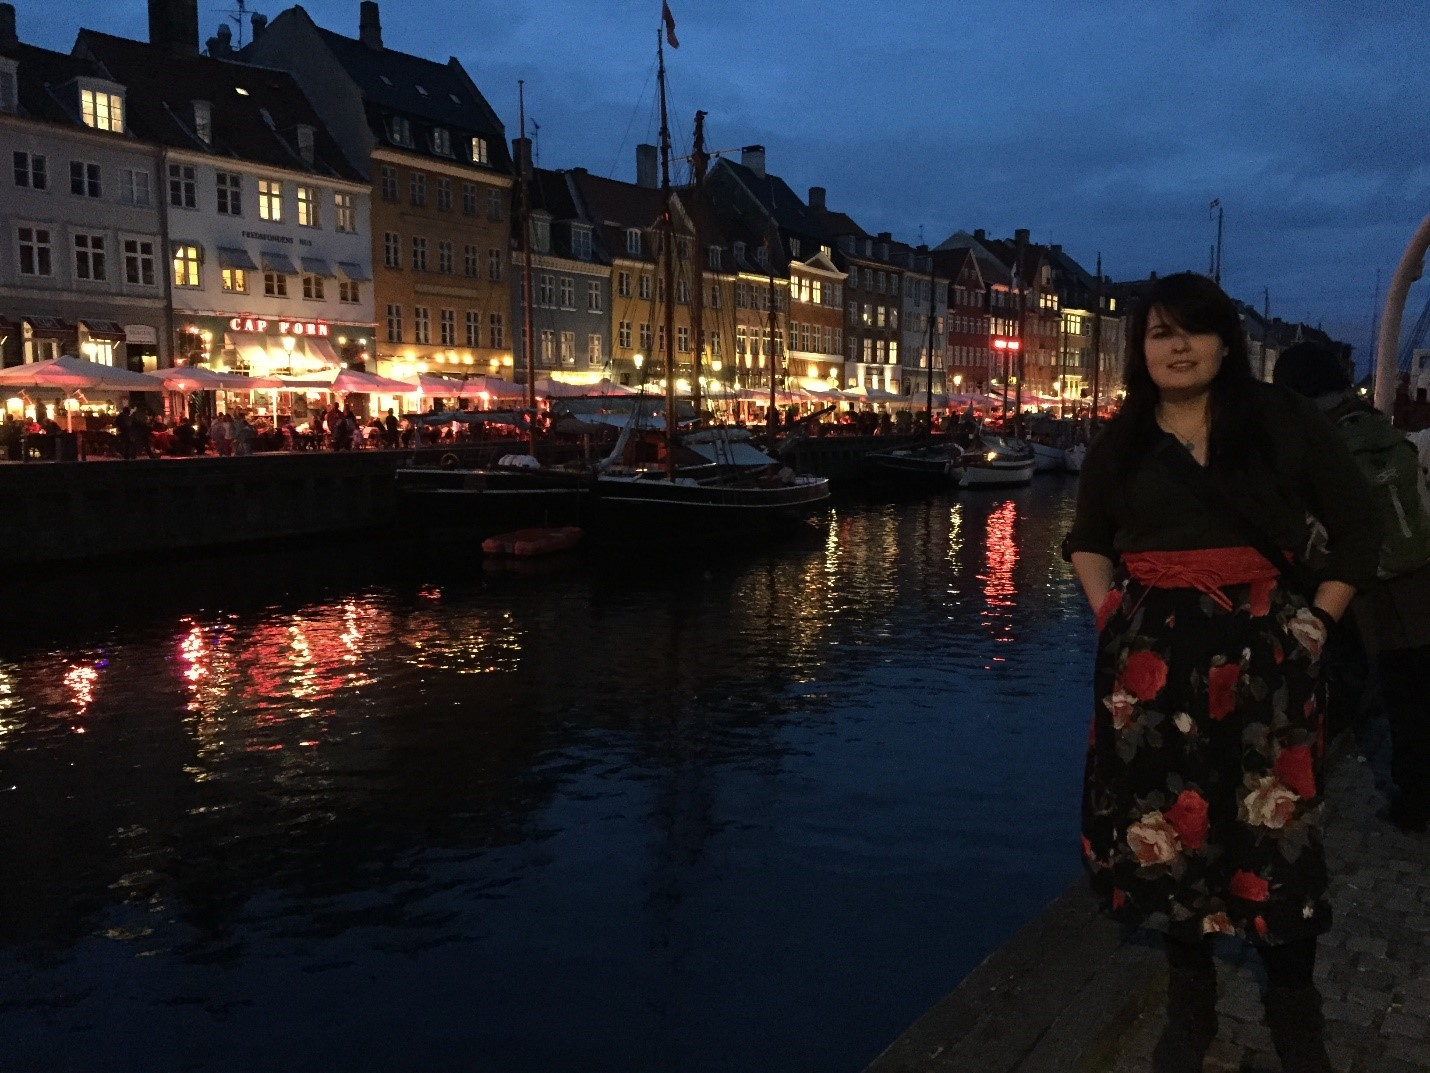 Copenhagen tourism! Pictured: The Author